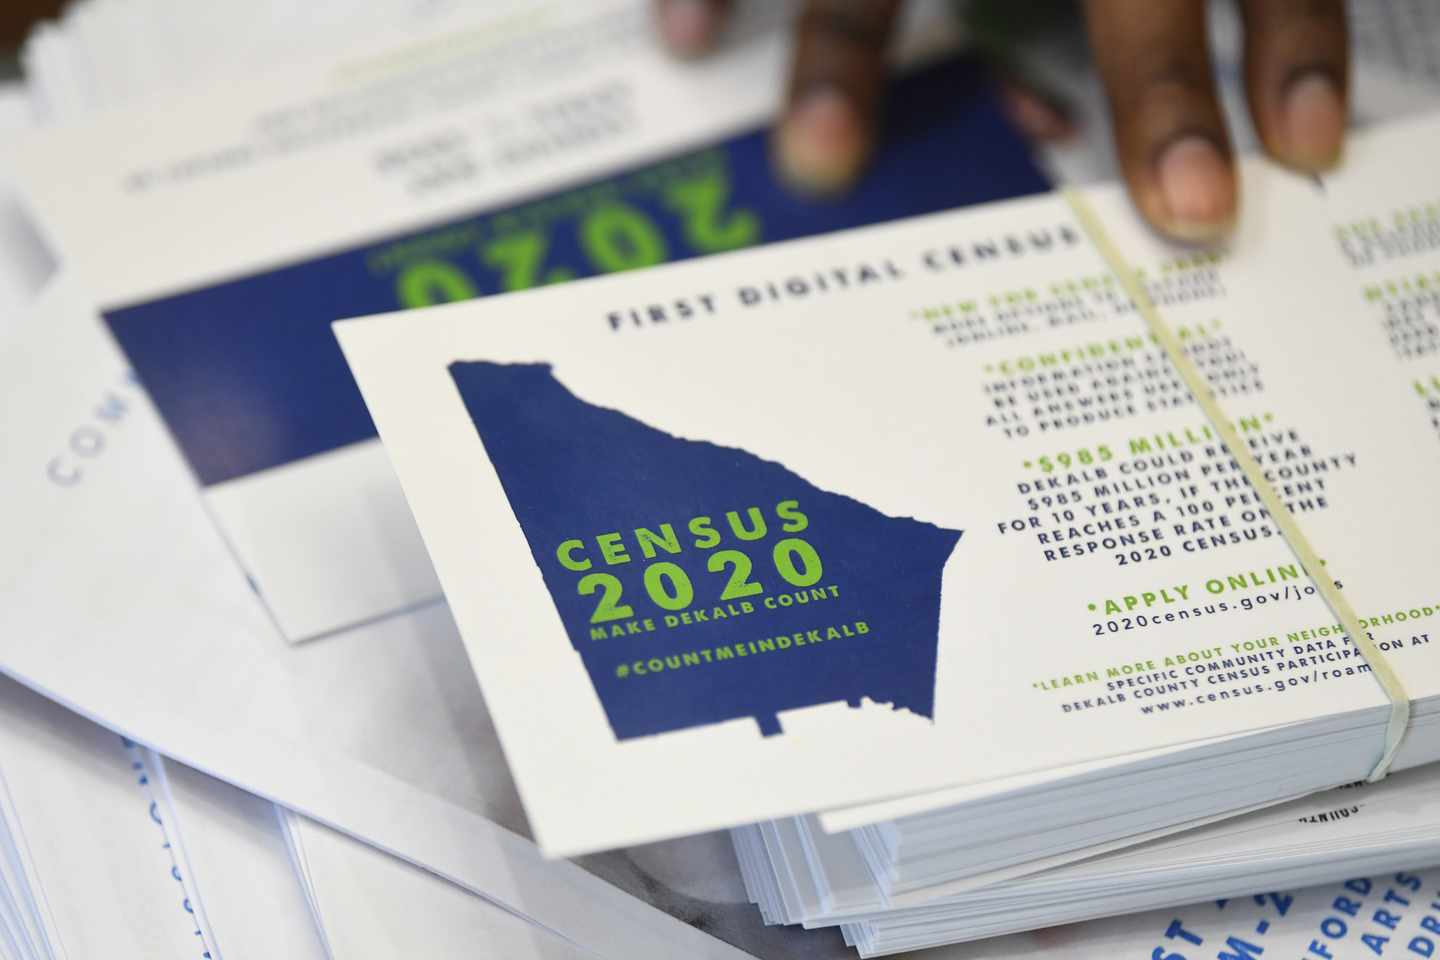 2019 Census Estimates Foreshadow House Seat Gains, Losses